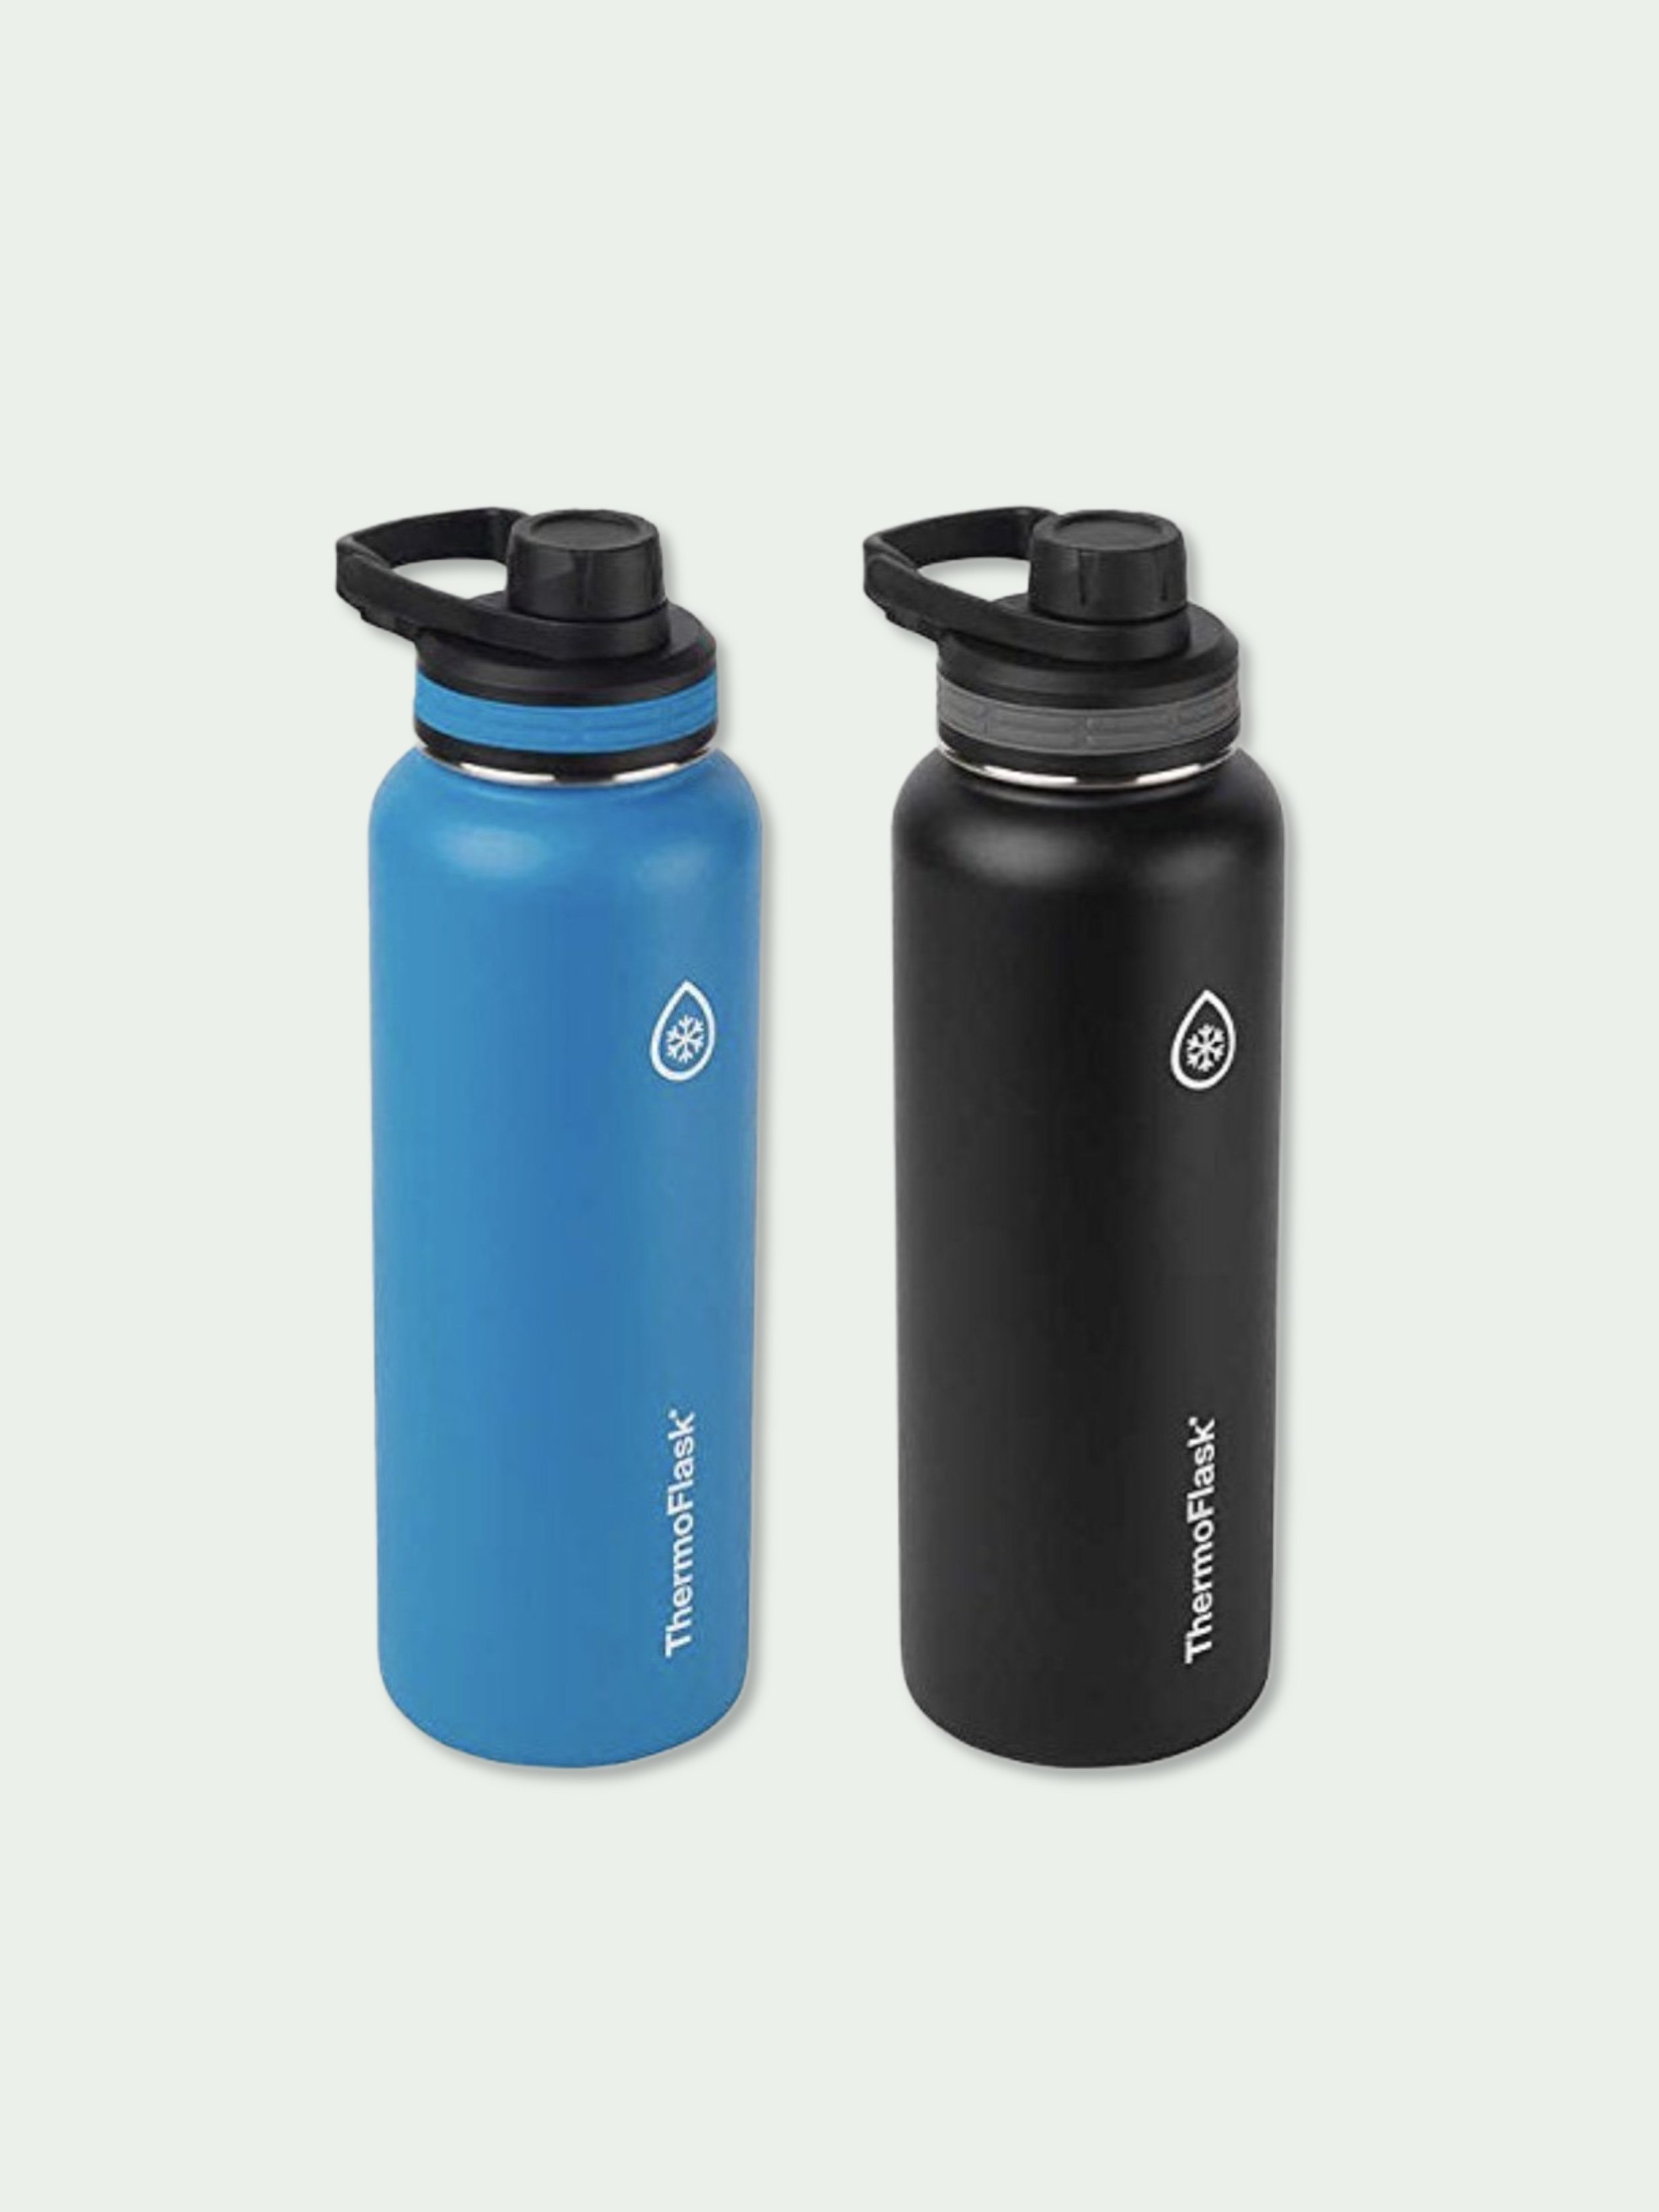 40 oz Thermoflask Water Bottles (2 Pack) - We've had our ThermoFlasks for a couple months. Each bottle holds 40 oz of liquid, which is perfect for staying hydrated throughout the day.These double-wall vacuum insulated stainless steel bottles prevent outside temperature from affecting the inside. The loop handles make it easy to take our favorite beverage with us wherever we go. The easy-to-drink spout with leak-proof lids make it convenient for car passengers to stay hydrated without getting water all over myself when the traffic light turns red on a dime. We like to keep one in the car at all times, and another bottle with us when we're walking around. These bottles will keep your drinks cold for up to 24 hours and hot for 12.